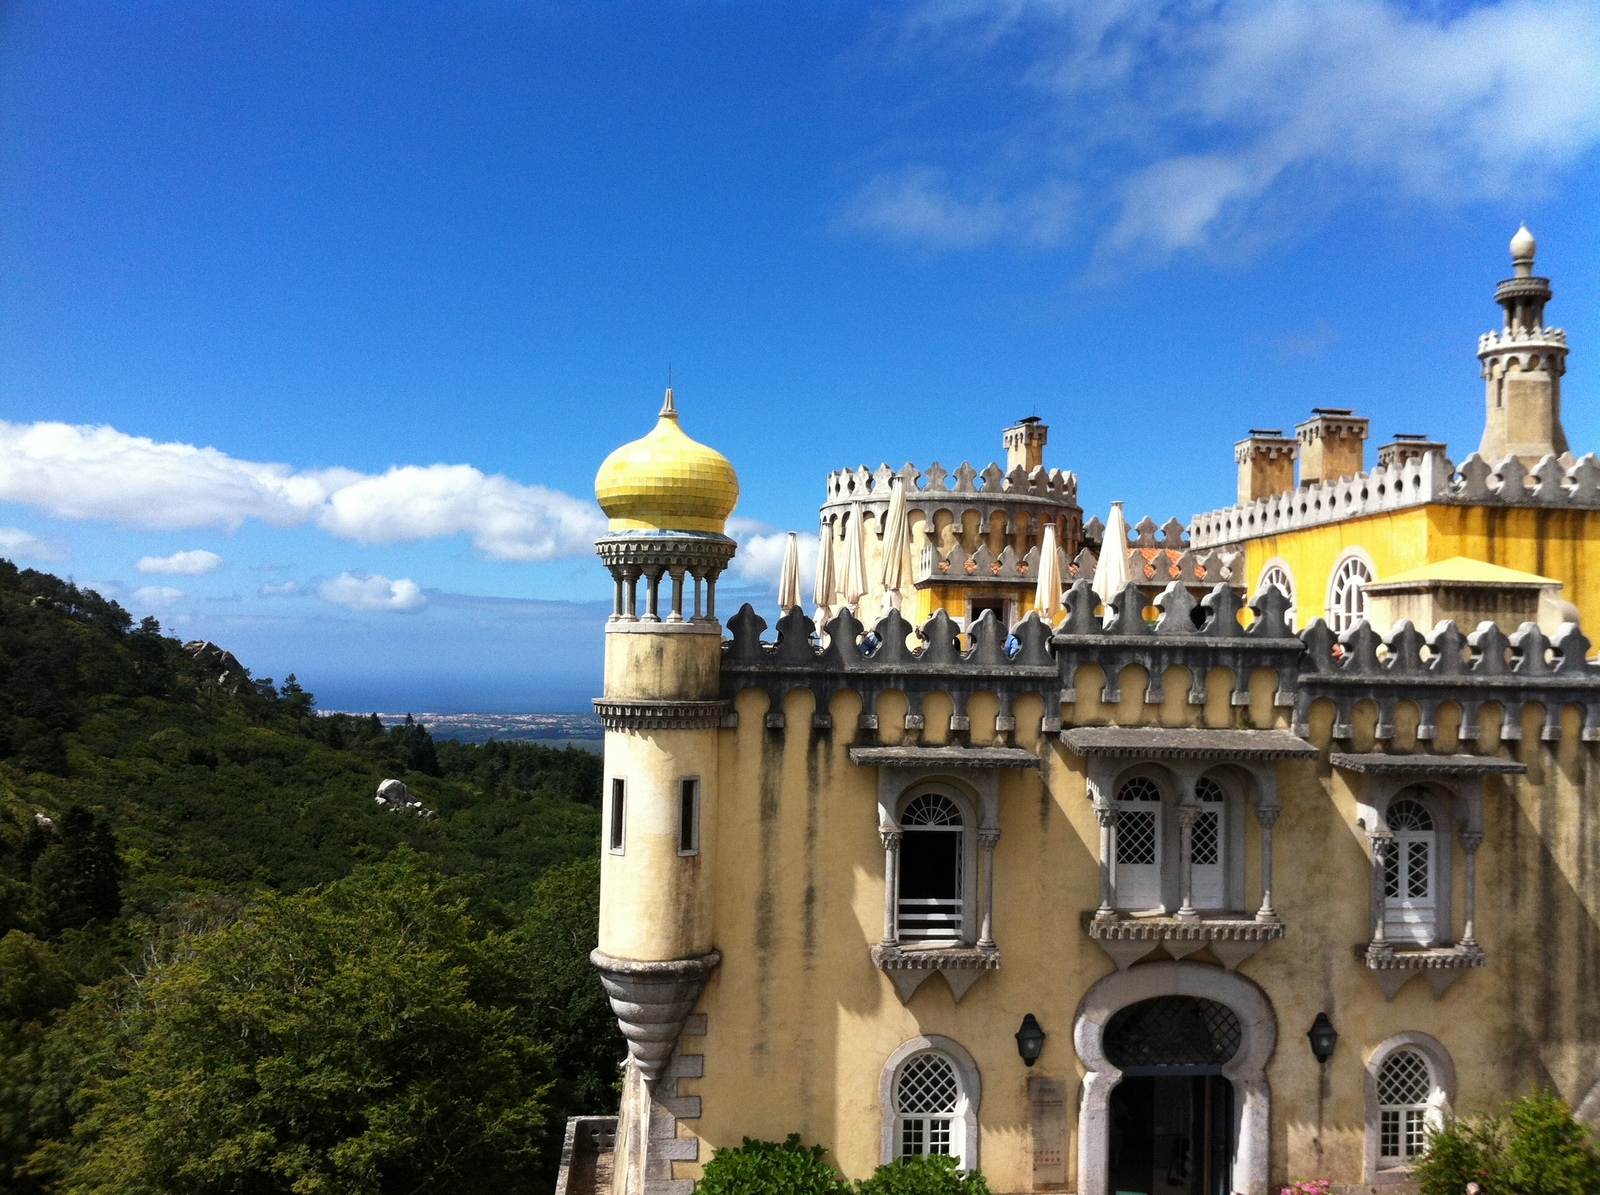 7 places to visit in Portugal - Sintra - The Pena Palace at Sintra looks like something out of a fairytale with fanciful turrets and bright yellow paint. Be sure to check out the extensive gardens as well.